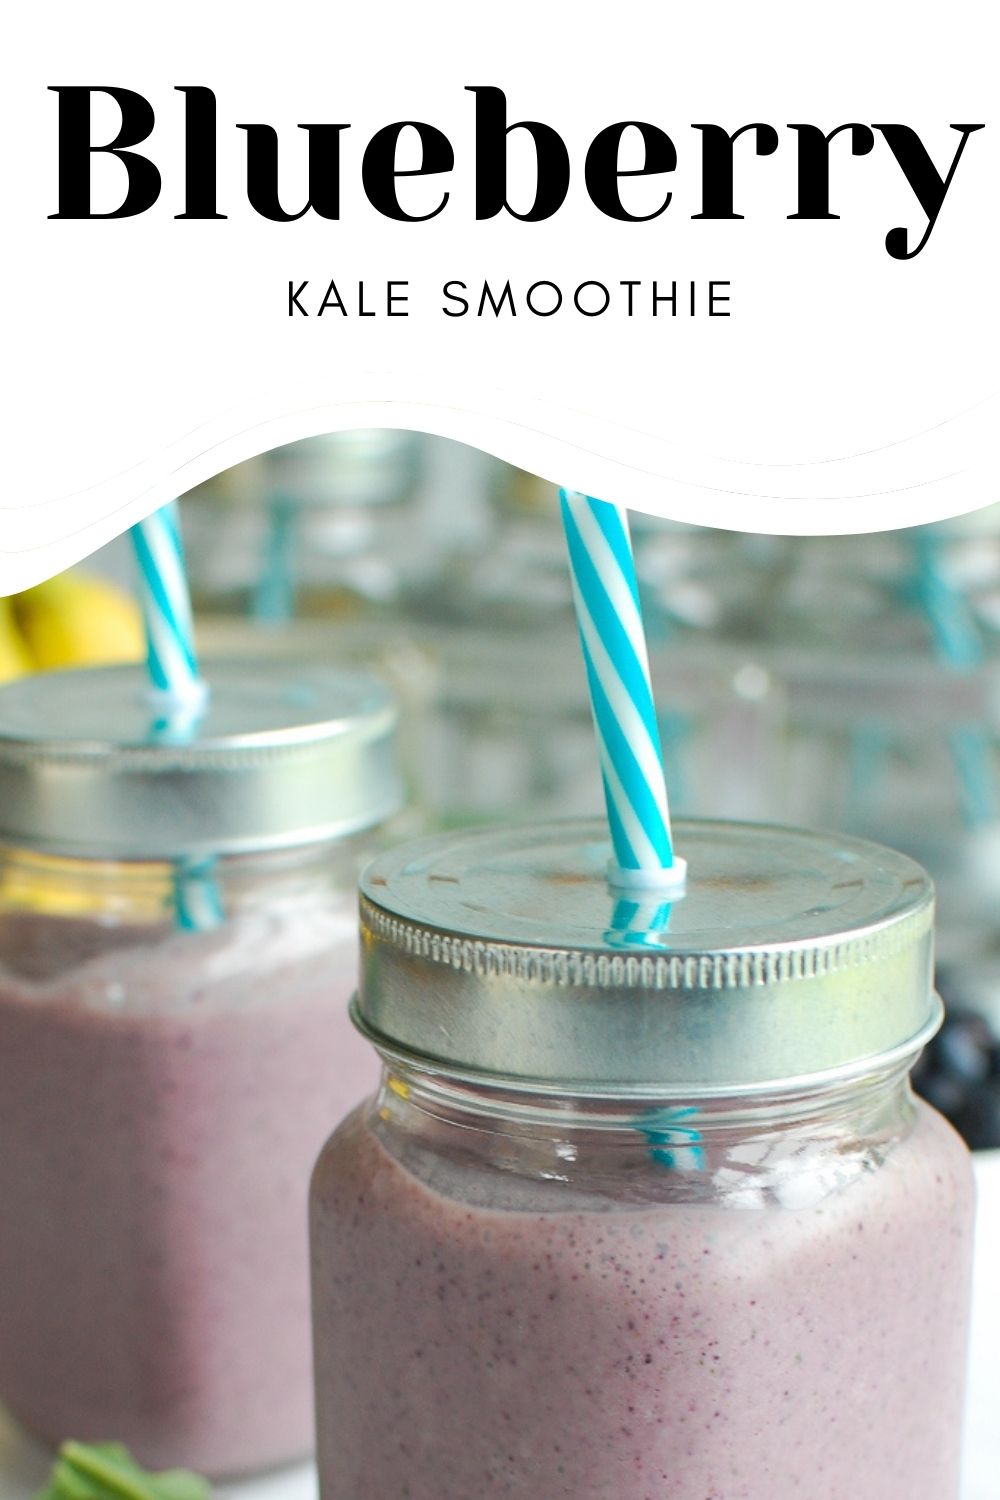 Blueberry Kale Smoothie with logo.